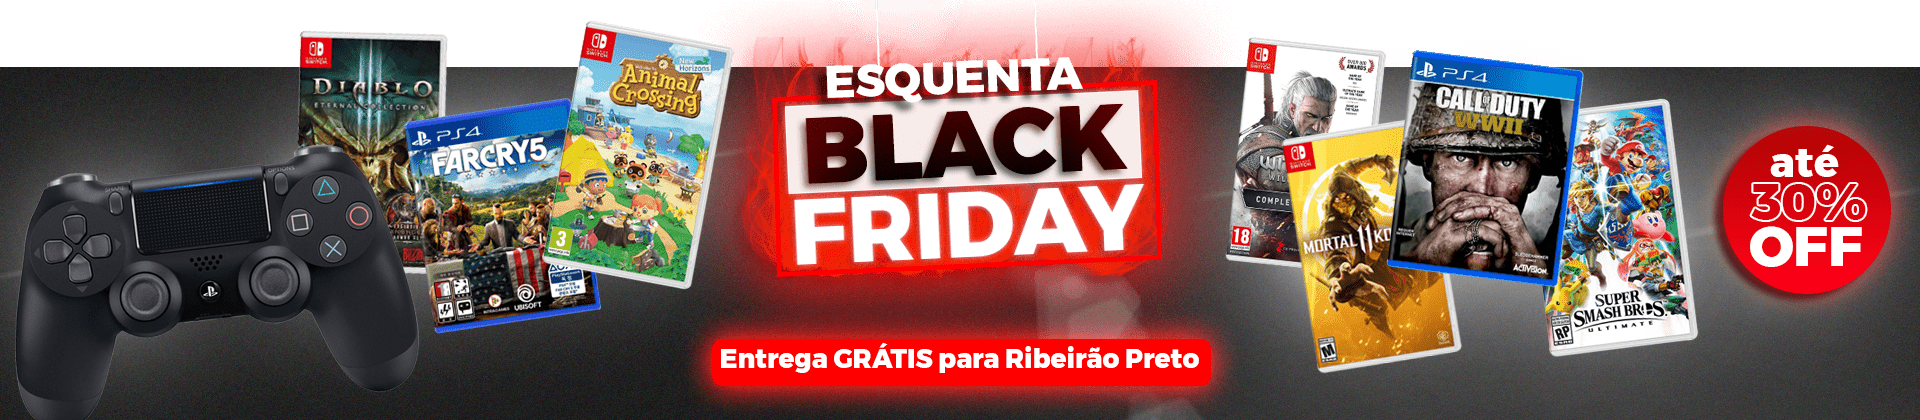 Esquenta_BlackFriday